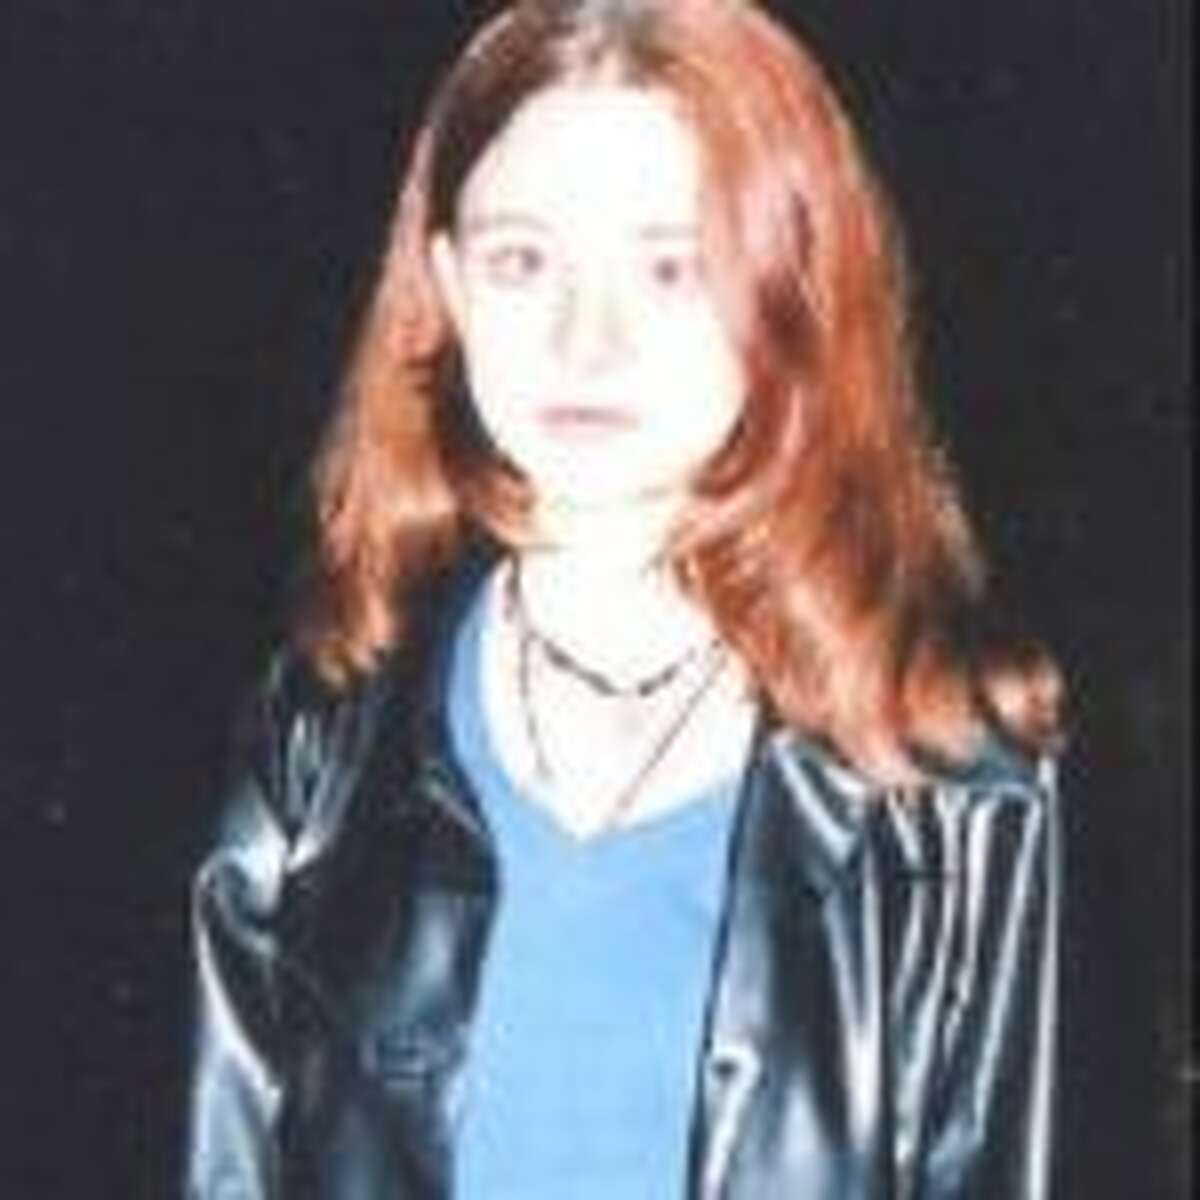 Nineteen-year-old Christina White was reported missing in 2005. She was last seen by family members the night of June 30 leaving her home in Saratoga Village mobile home park in Milton. (Saratoga County Sheriff's Office)